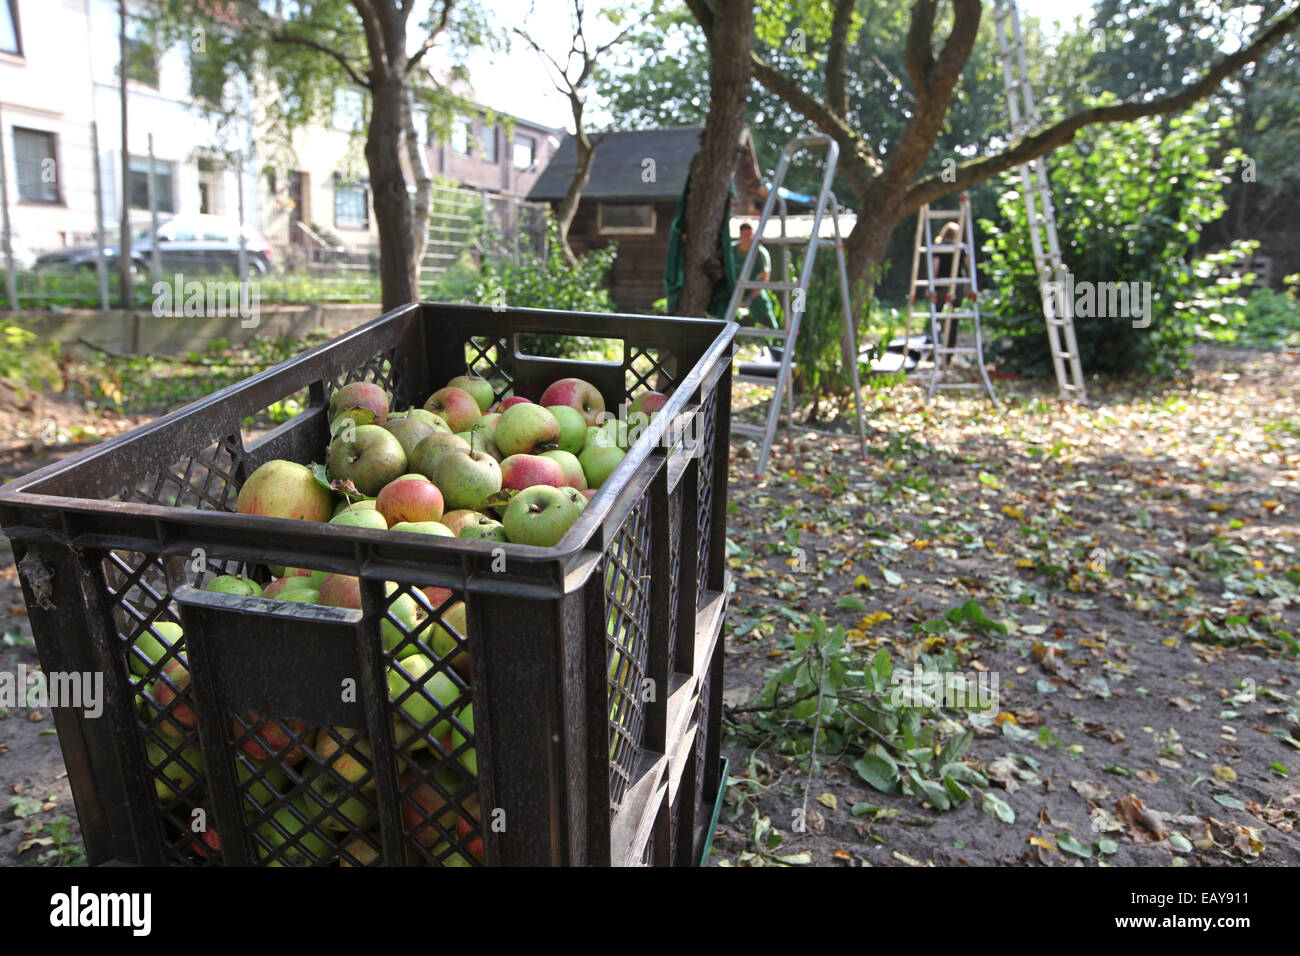 Apple harvest in an urban gardening project in Germany - Stock Image